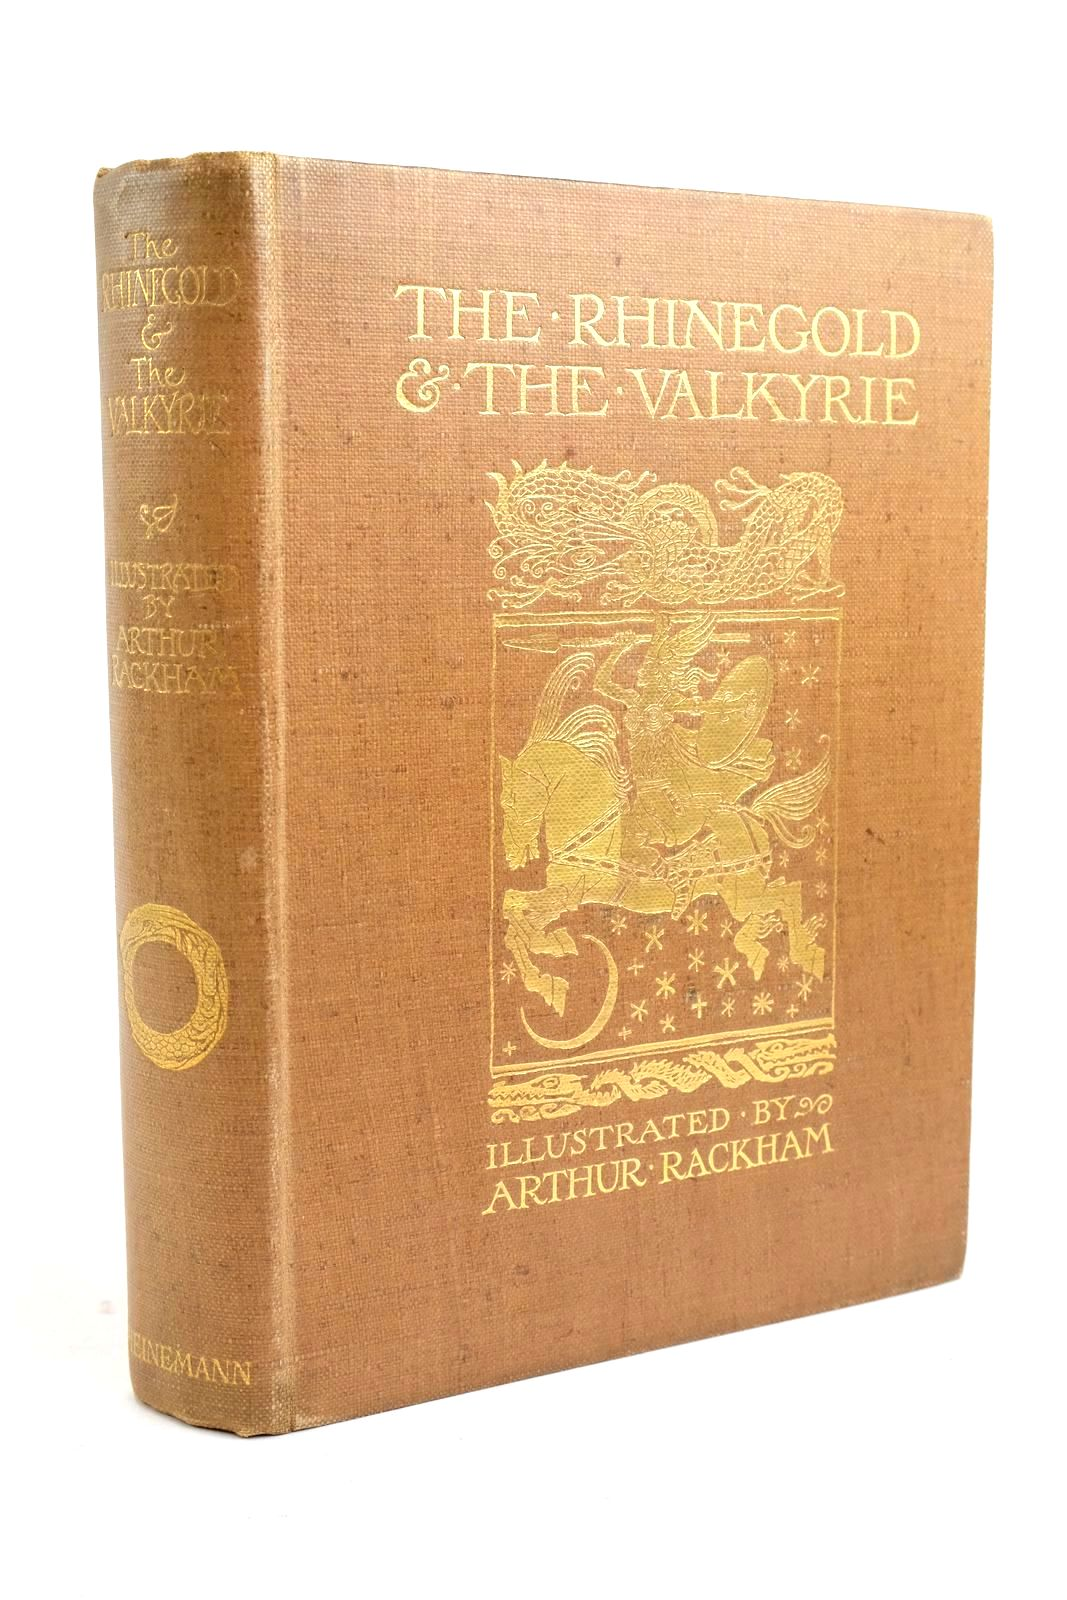 Photo of THE RHINEGOLD & THE VALKYRIE- Stock Number: 1321098